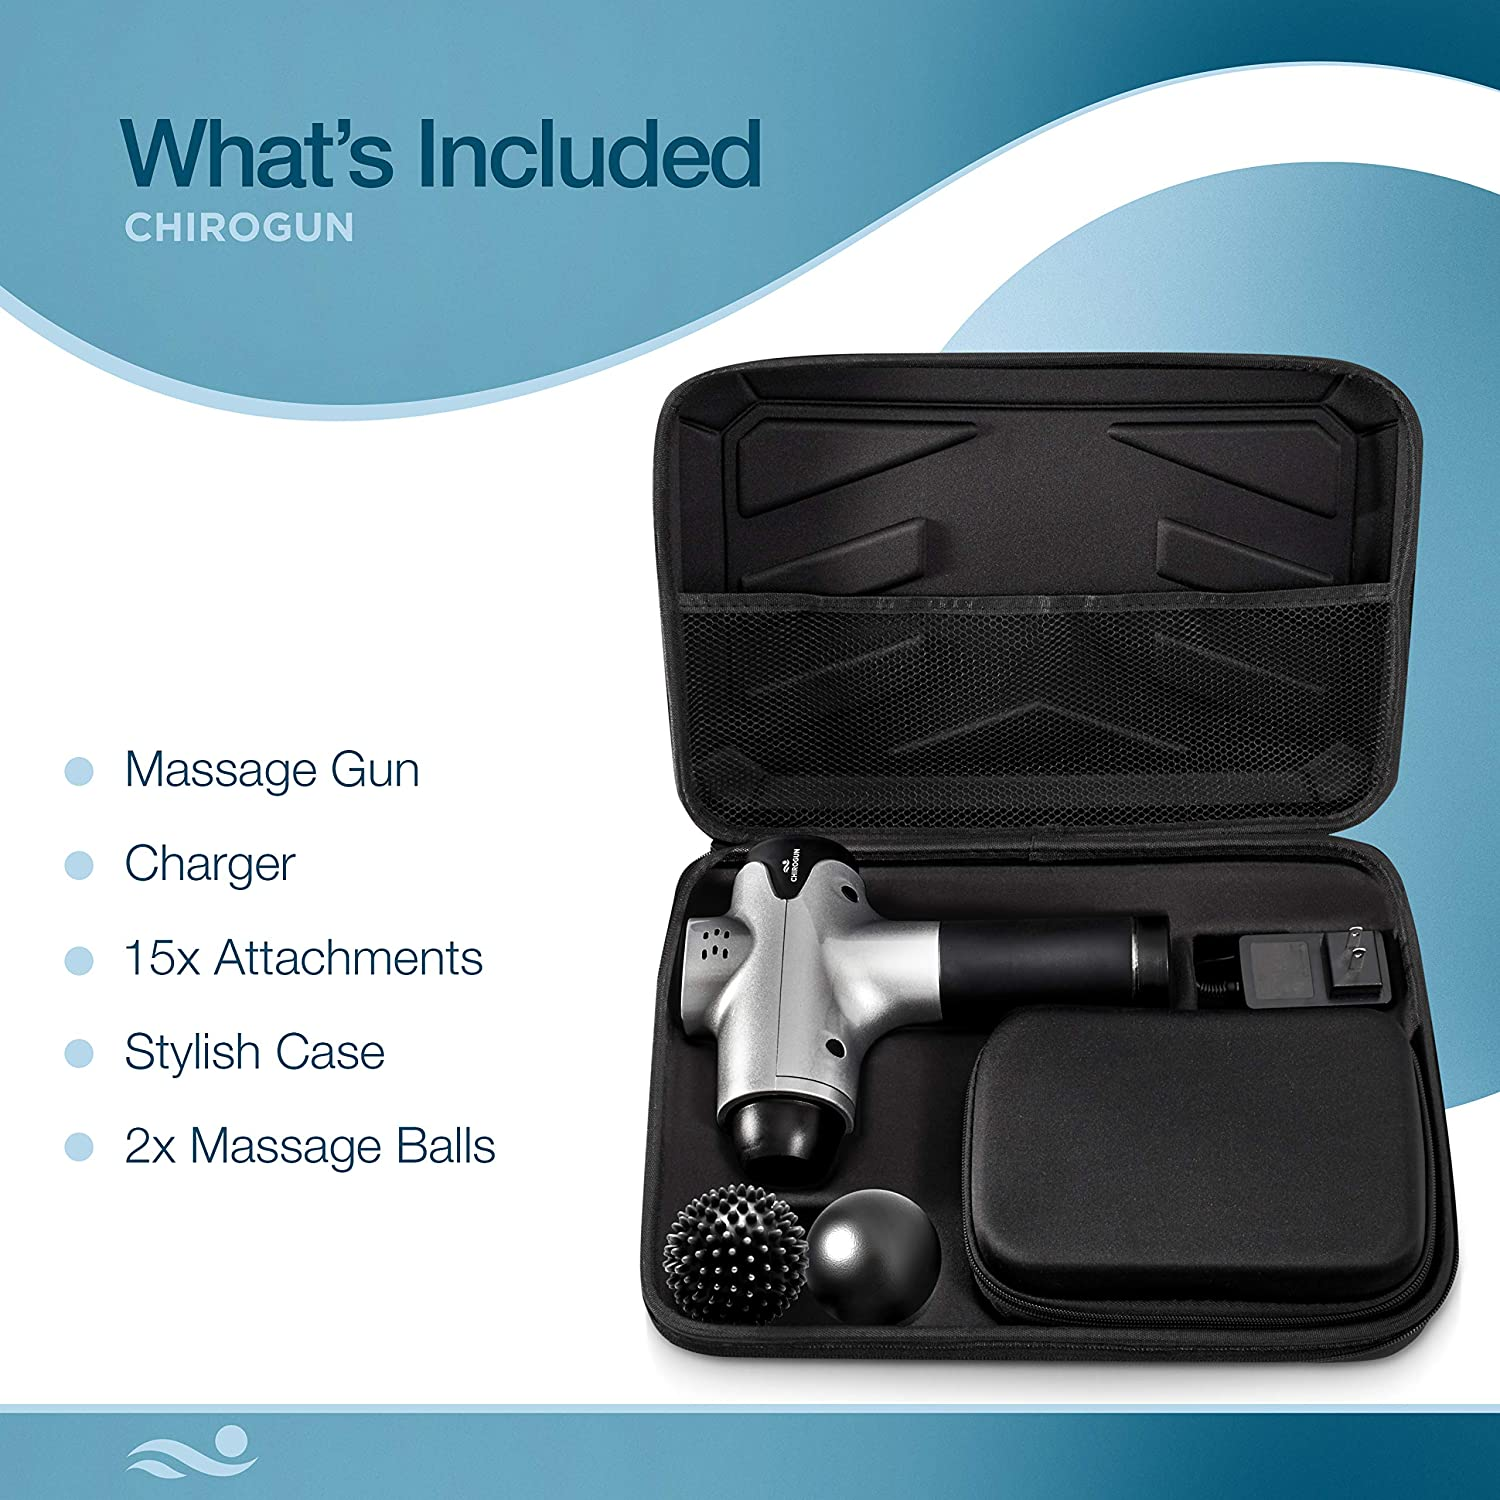 This are what are included in the Chiro Gun Massage gun and it comes with a hard-shell zippered case with various pockets to hold the contents in their place while traveling